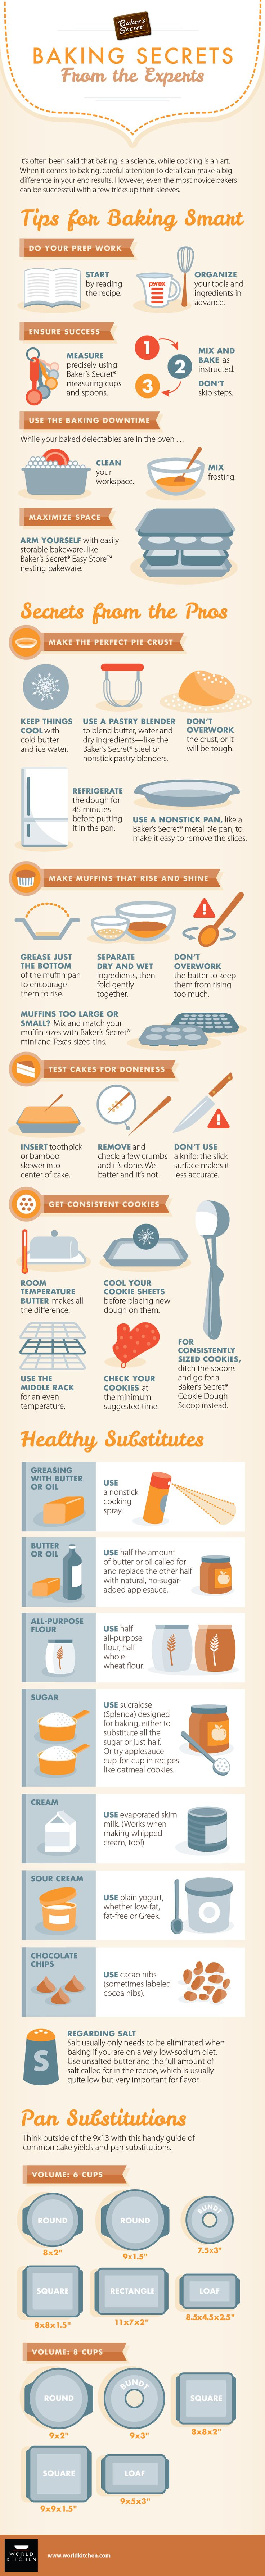 Baking tips for every occasion from #BakersSecret